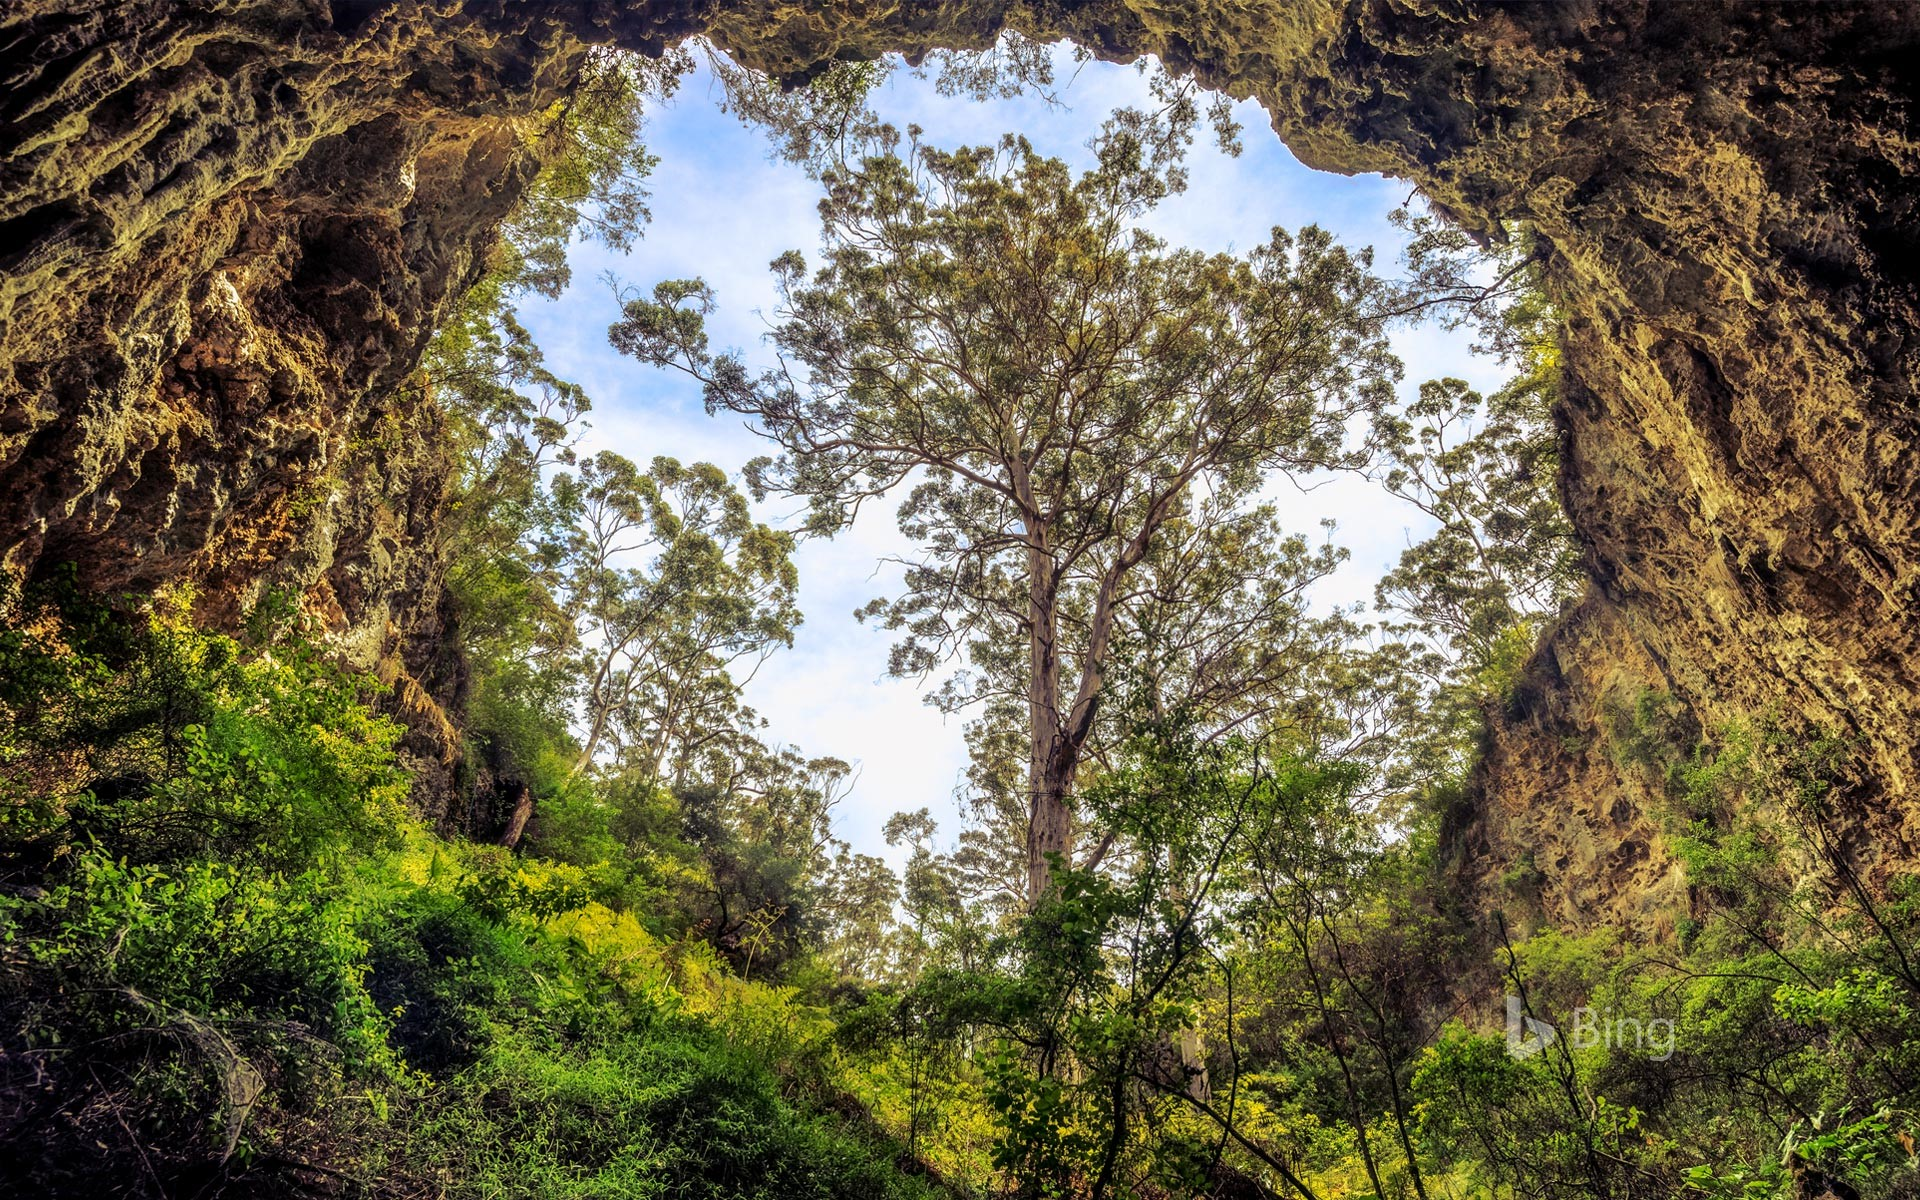 Giant karri tree at the entrance to a cave in the Margaret River area, Western Australia